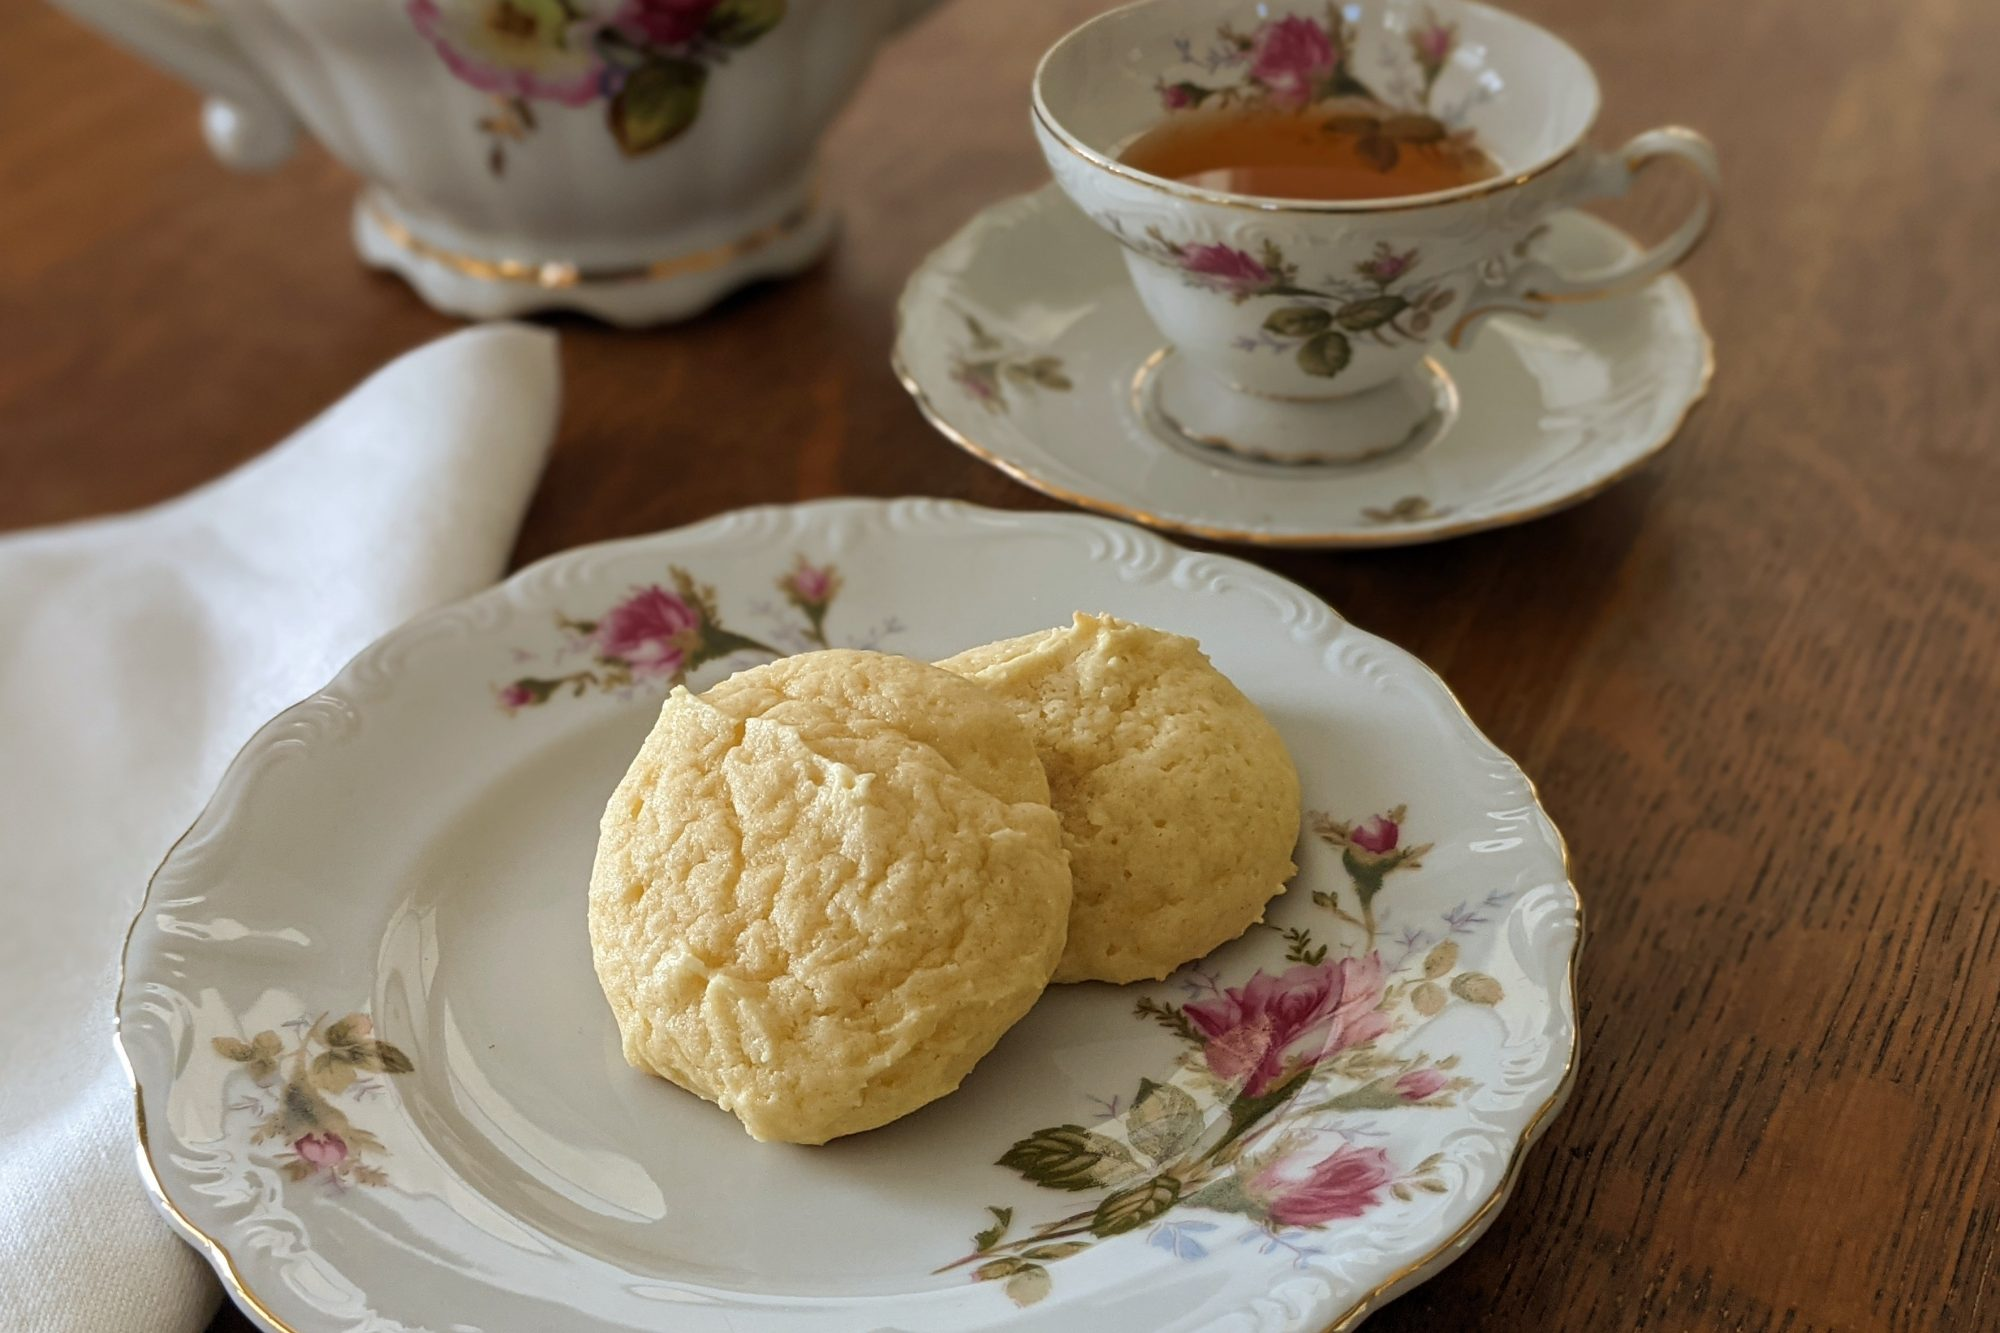 Great-Grandma's Sour Cream Drop Cookies on a plate served with a cup of tea